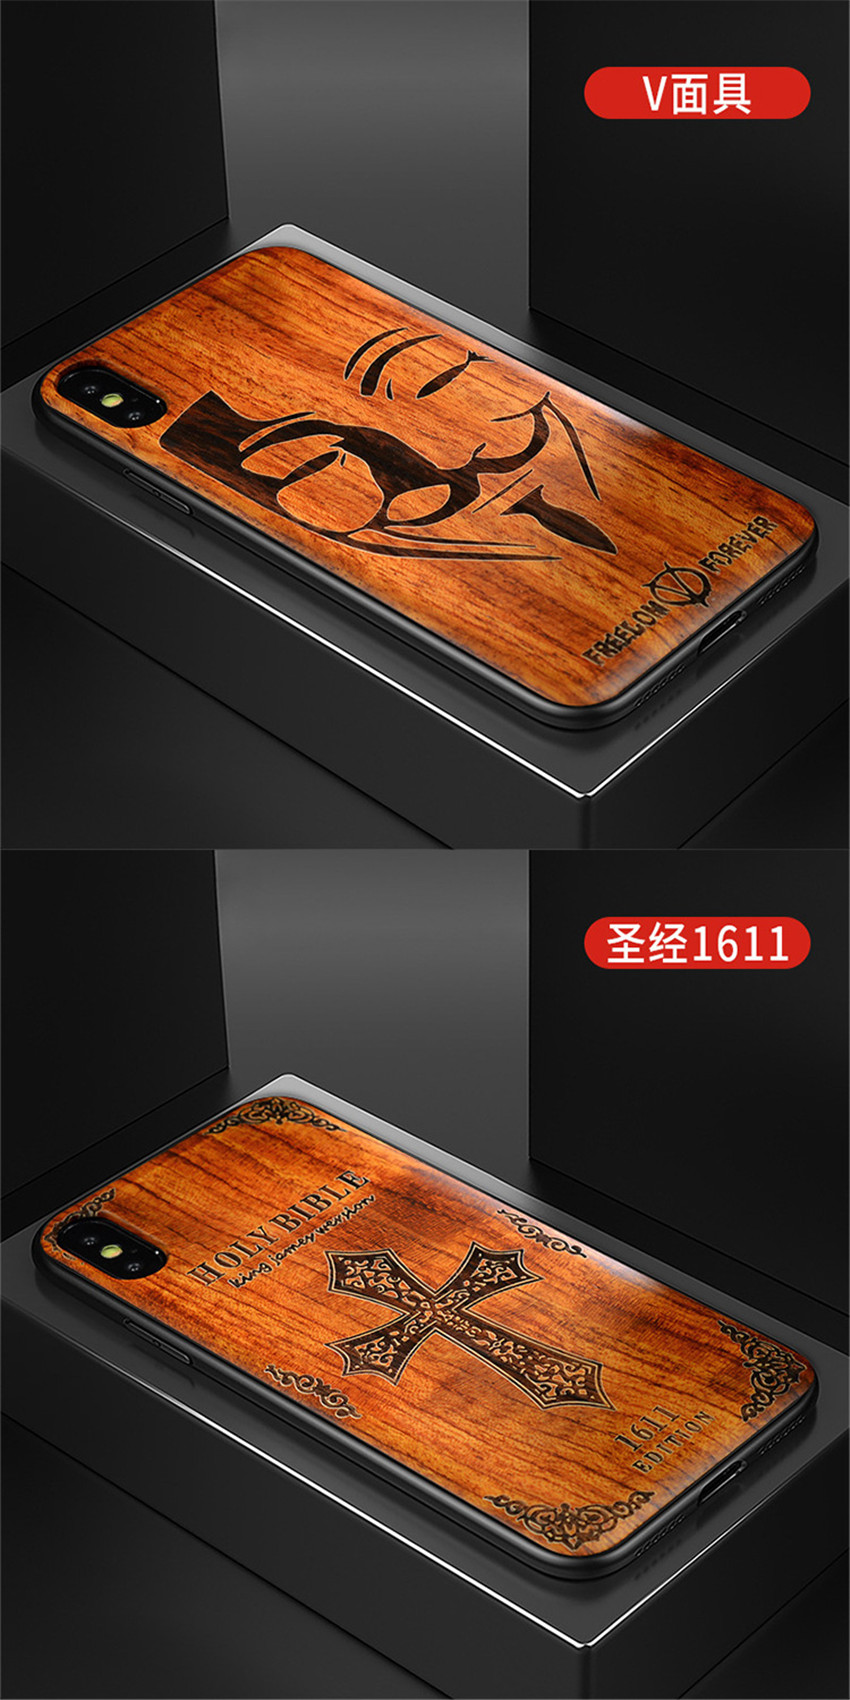 2018 New For iPhone XS Max Case Slim Wood Back Cover TPU Bumper Case For iPhone X iPhone XS Phone Cases (13)